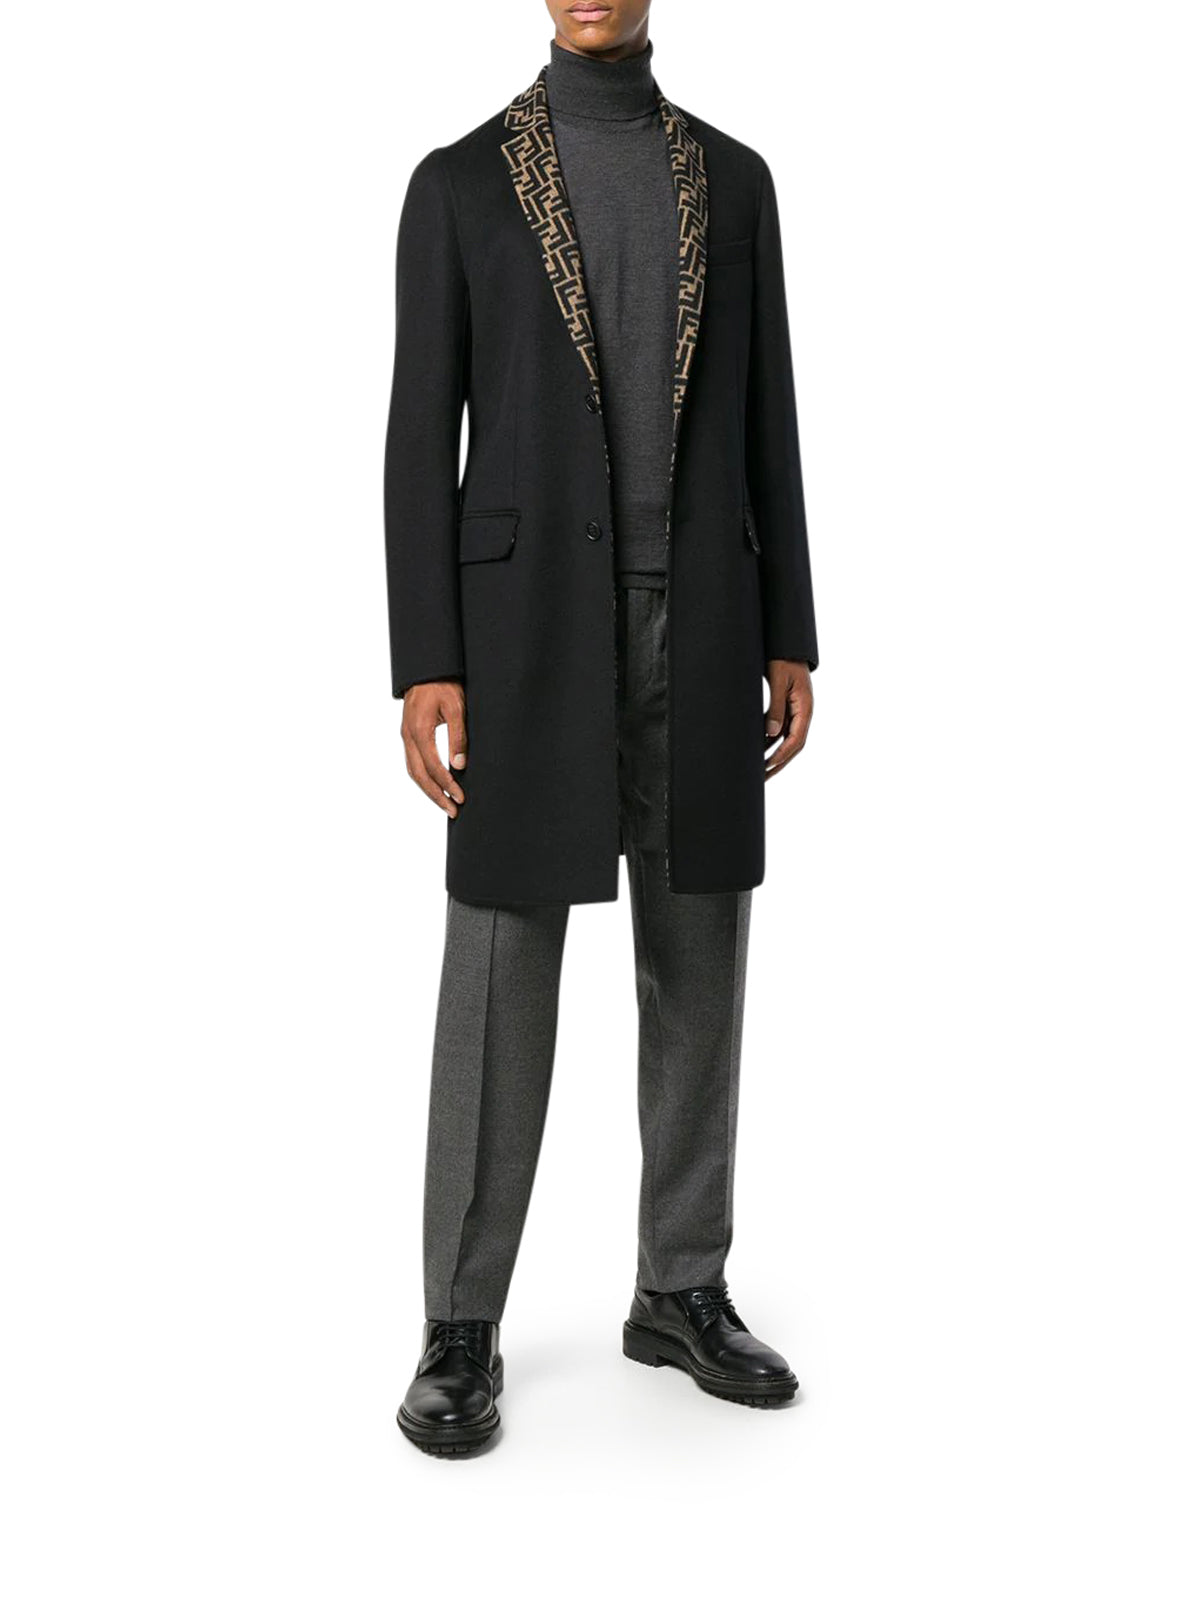 FF motif single-breasted coat